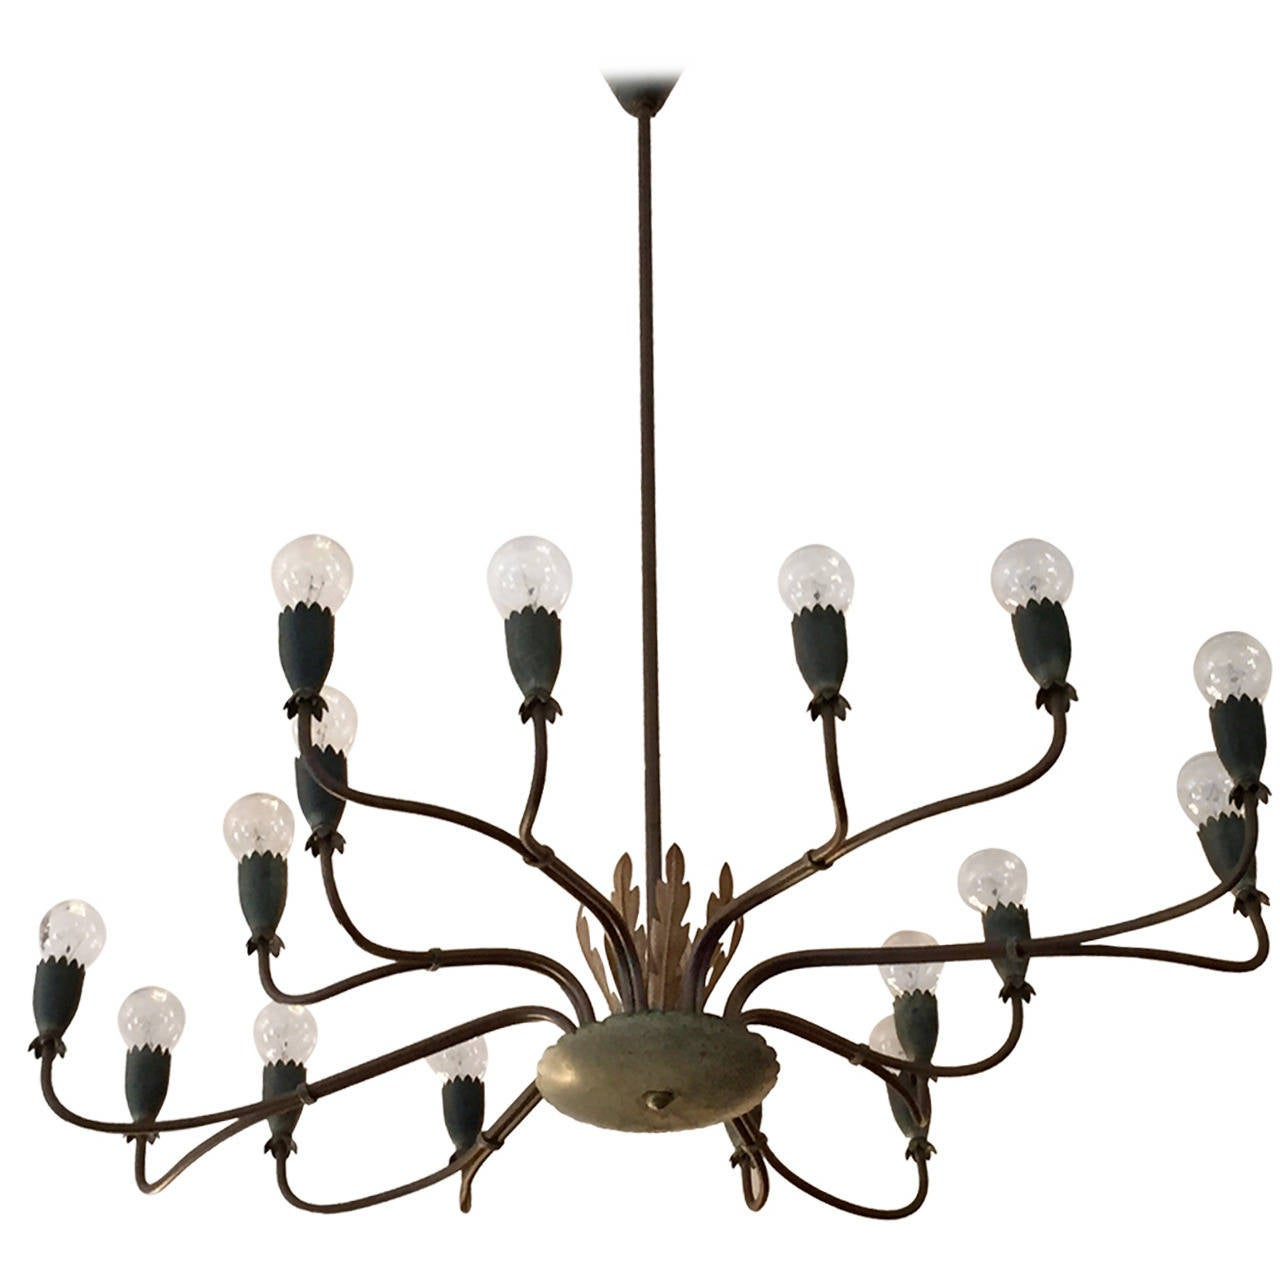 1940s Italian Chandelier For Sale at 1stdibs